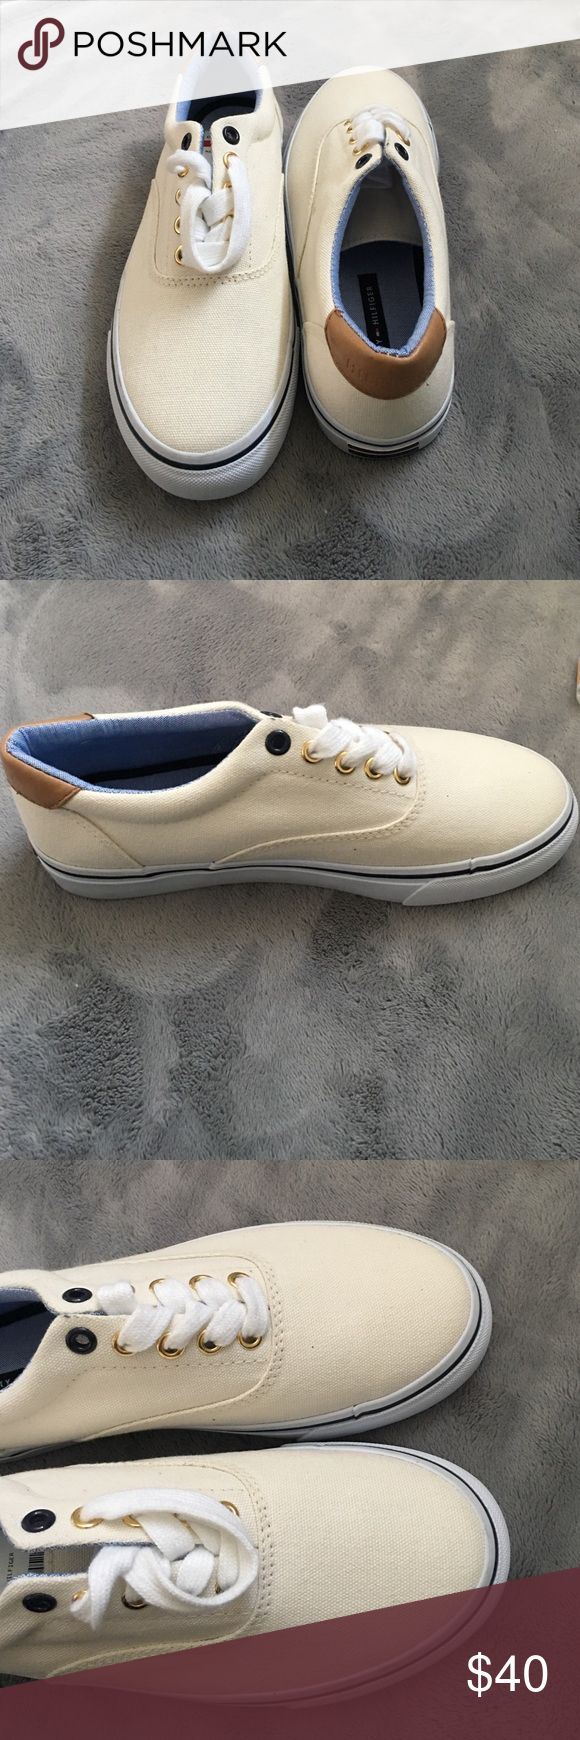 Tommy Hilfiger Maritza Tennis Shoes Brand new brand name tennis shoes that have not been wore and were just a size too small for me! Tommy Hilfiger Shoes Sneakers